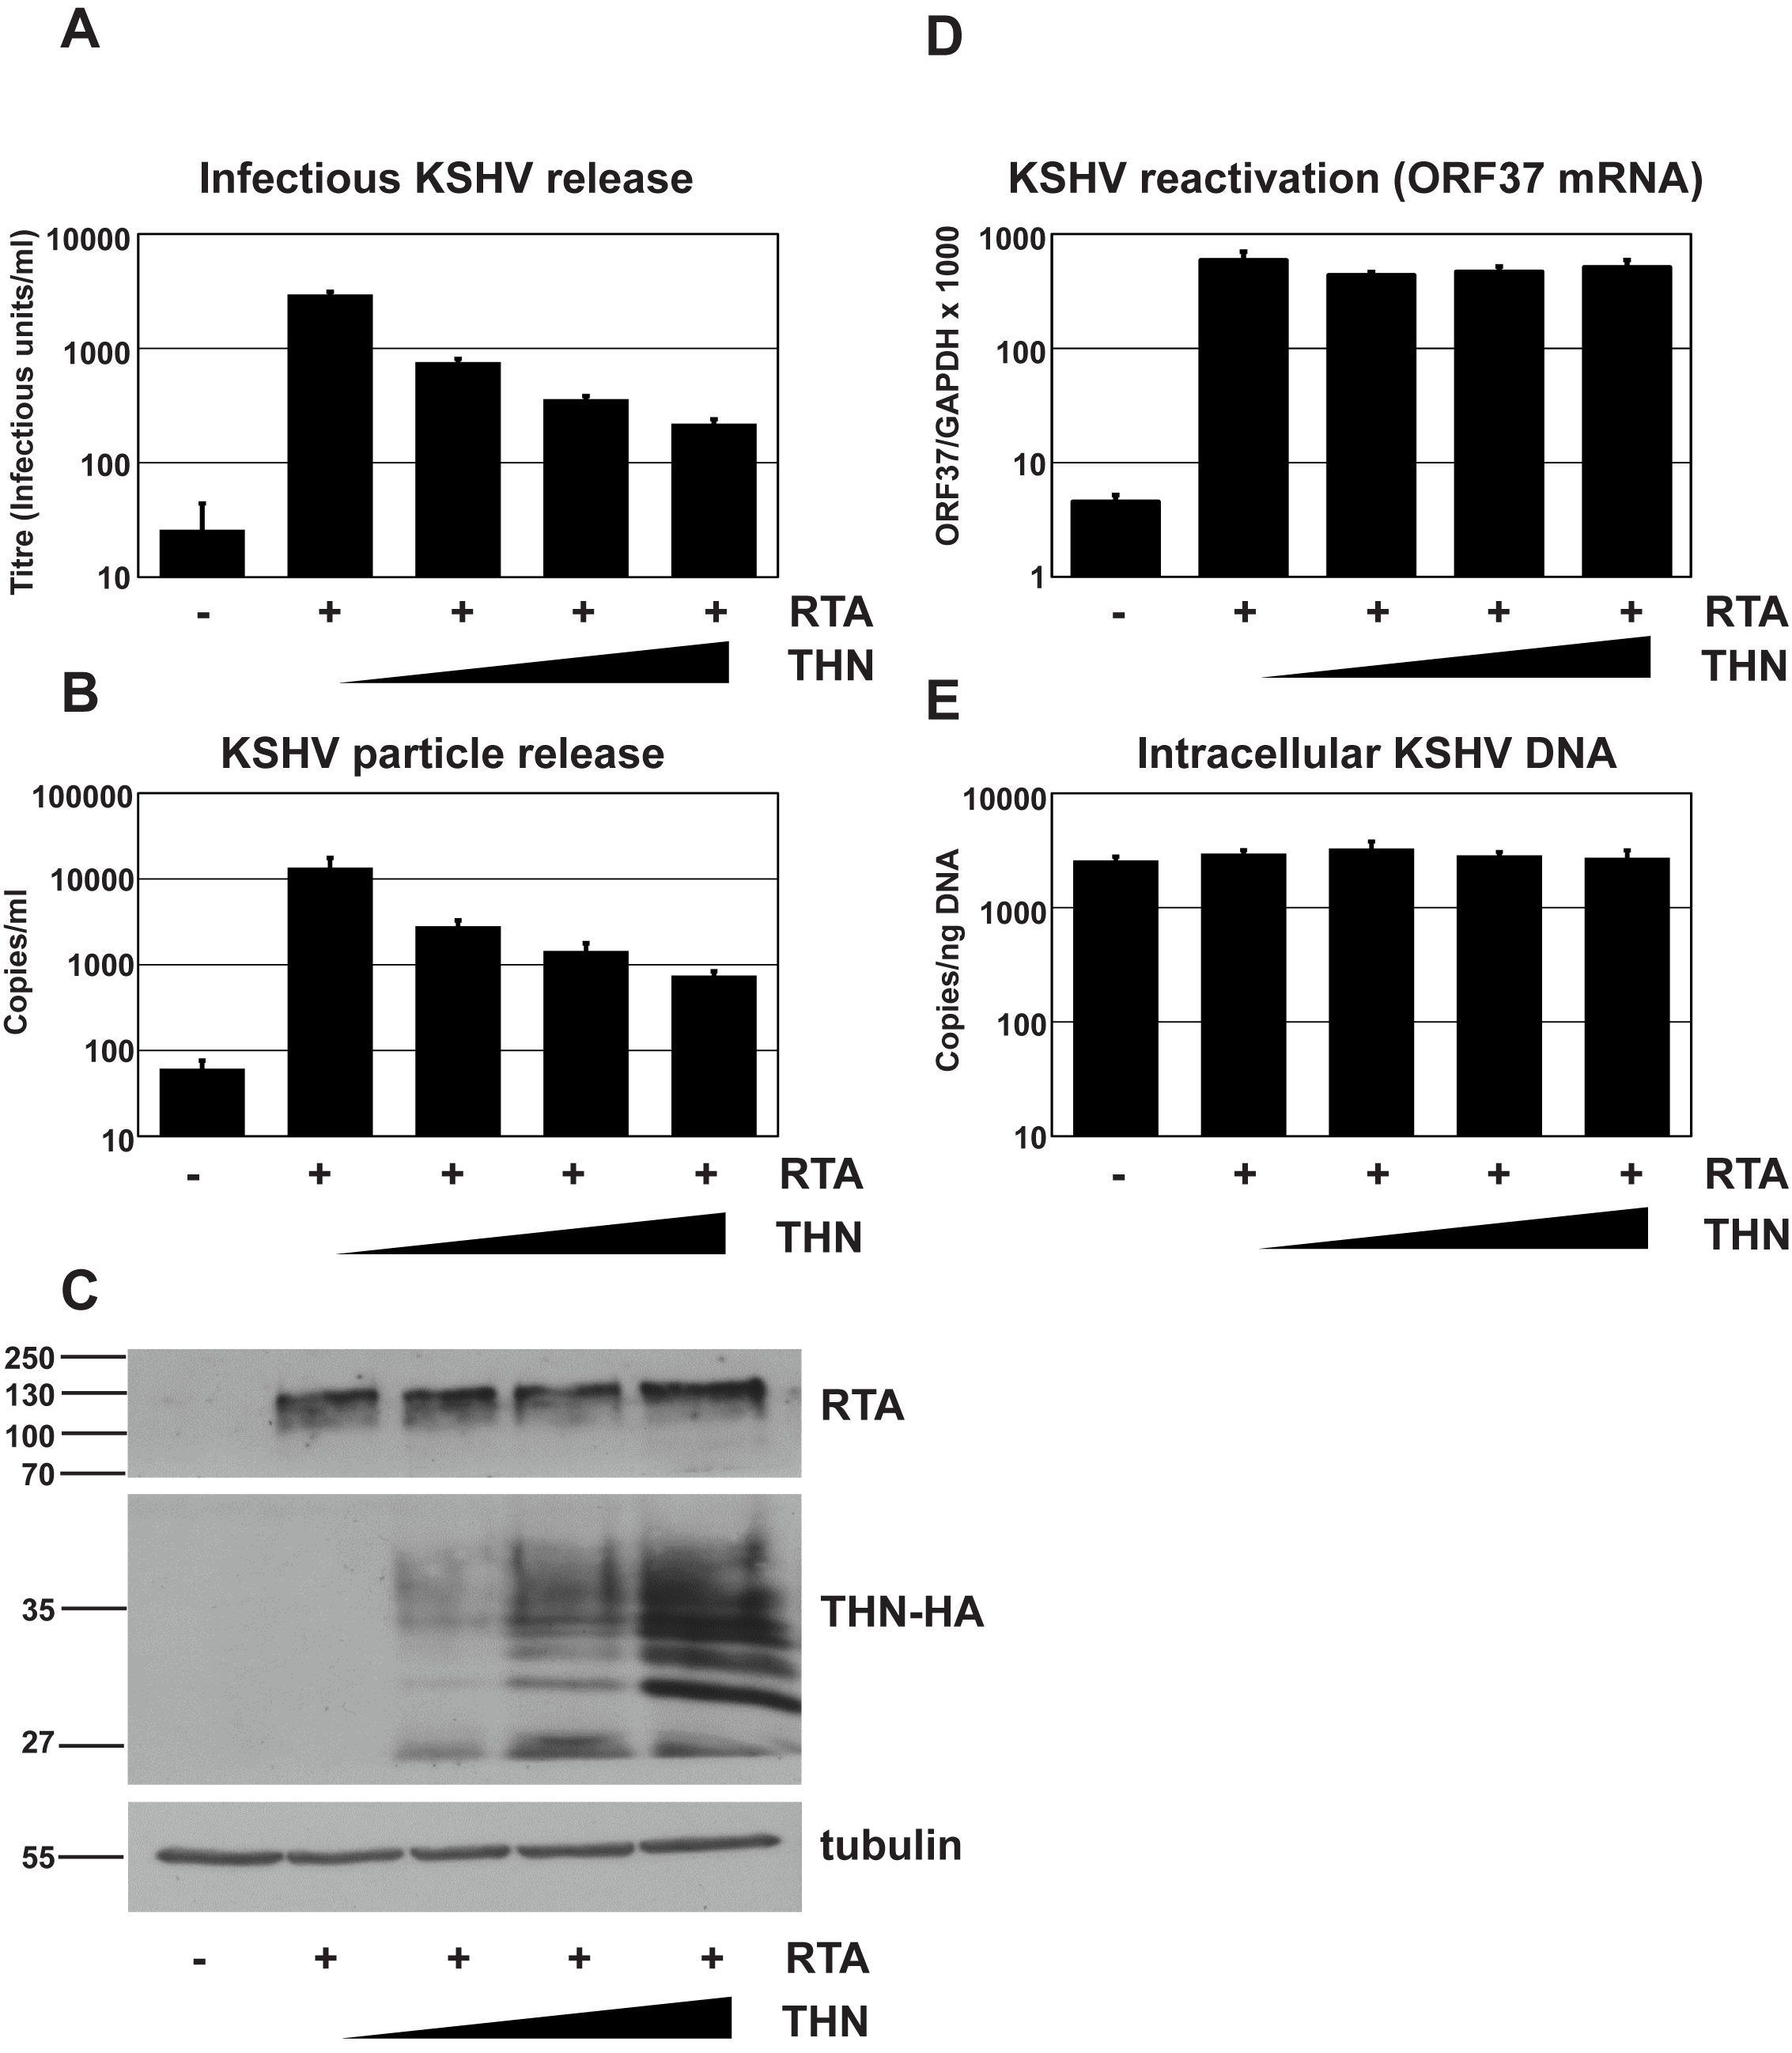 Over-expression of human tetherin restricts KSHV particle release.